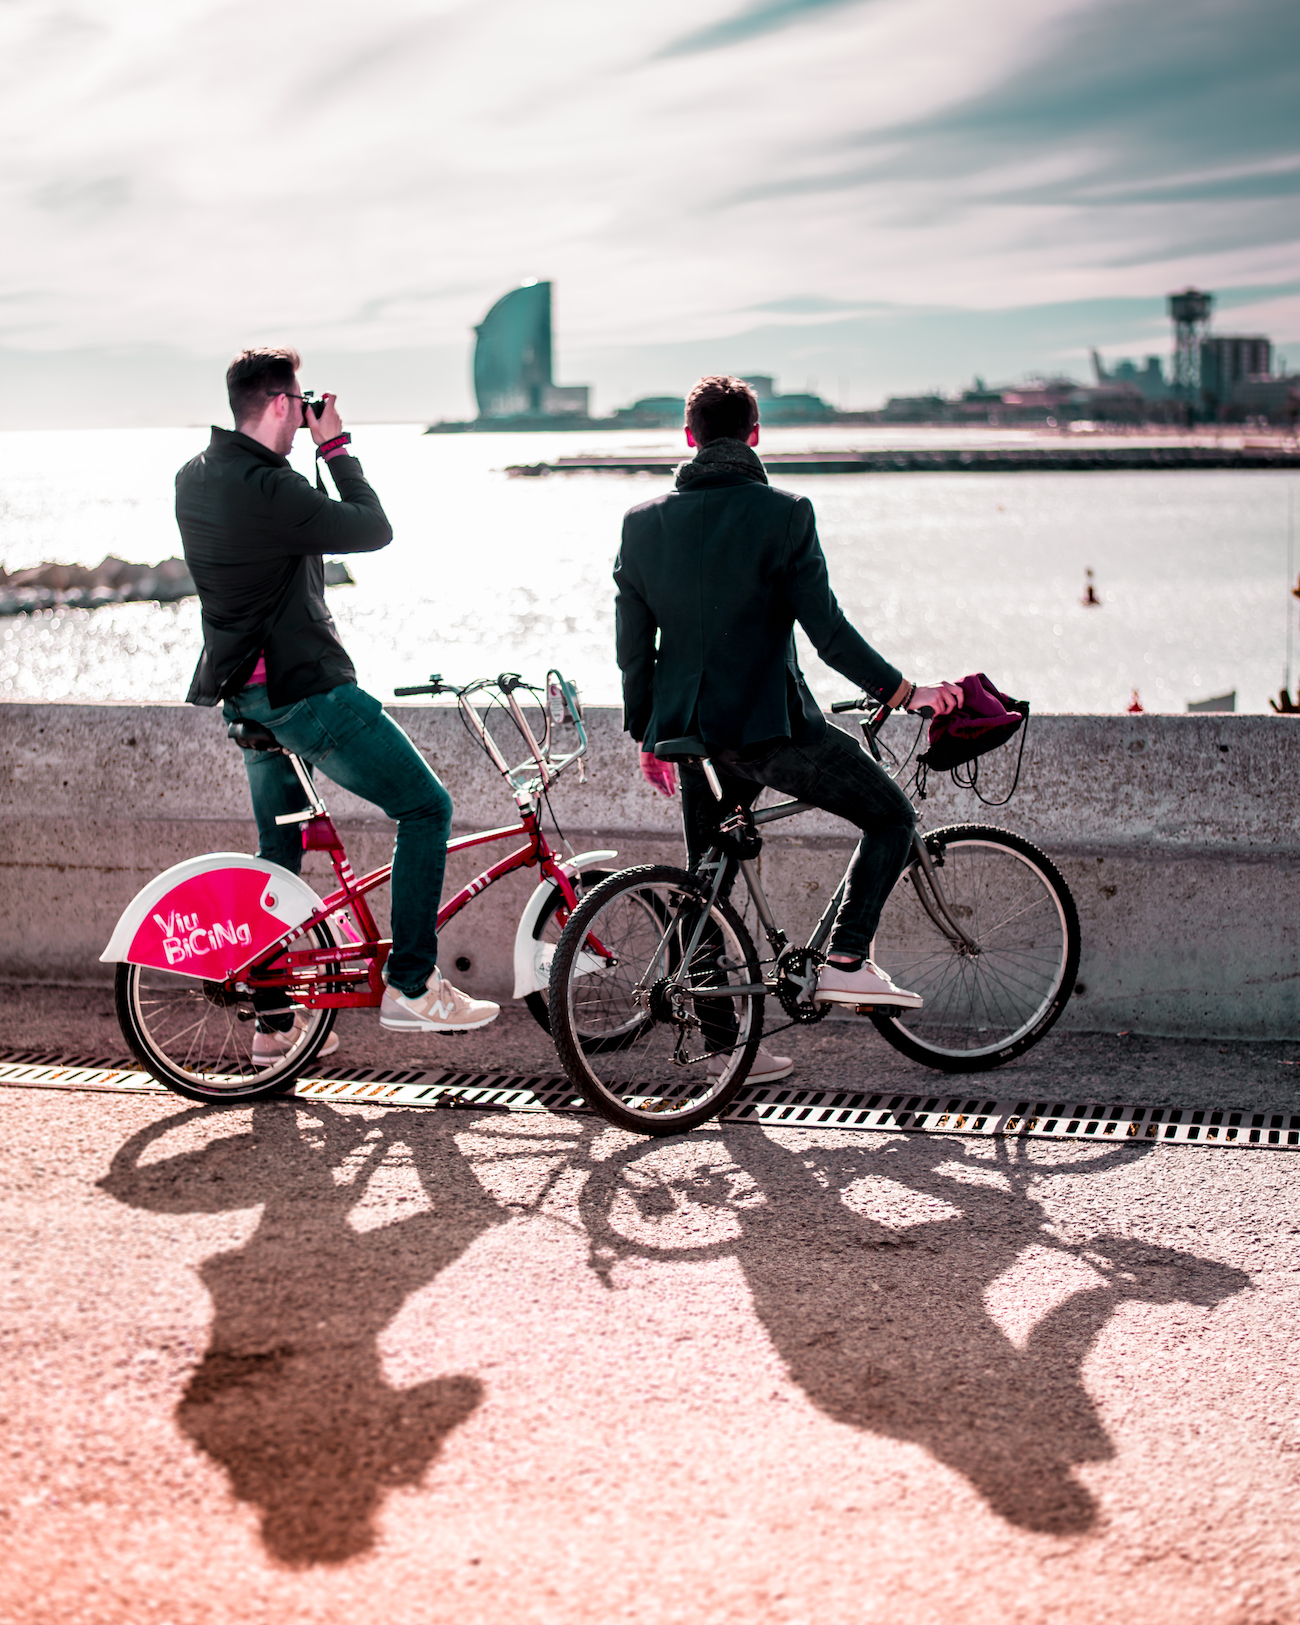 Cycling at the beach in Barcelona - by Ben Holbrook